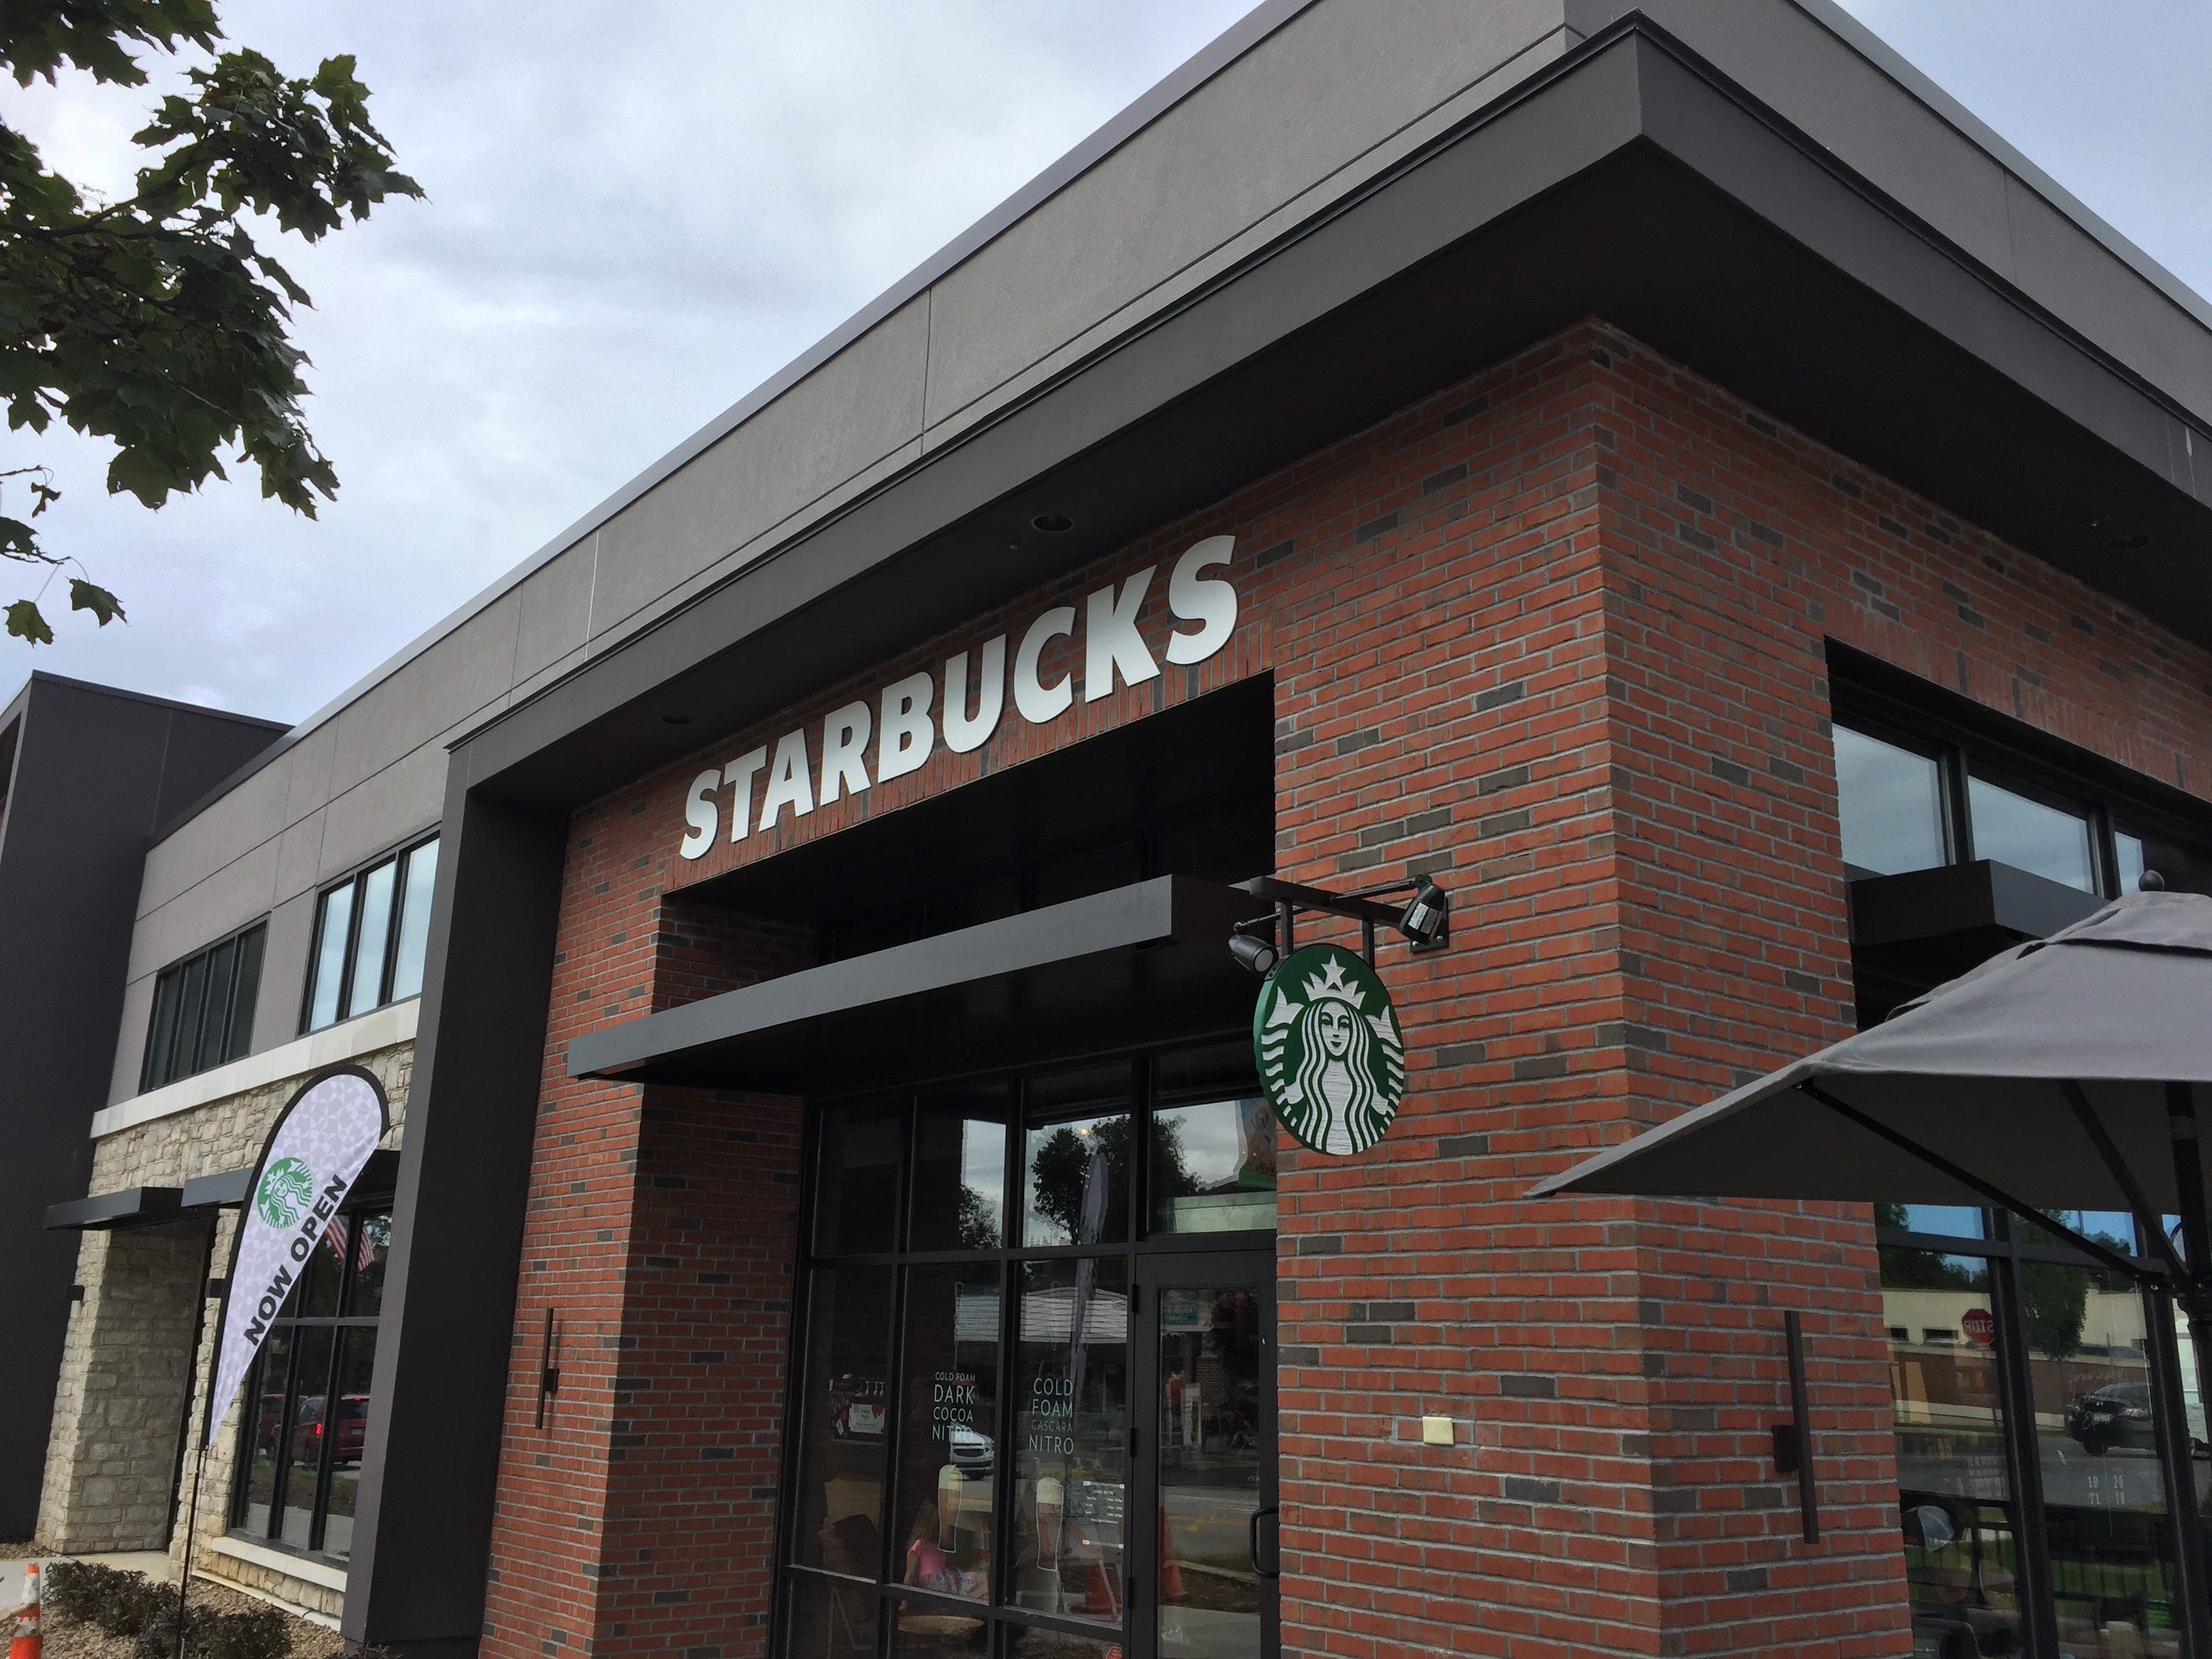 The new Starbucks became the first retailer to open at Hershey Towne Square on Sept. 14.